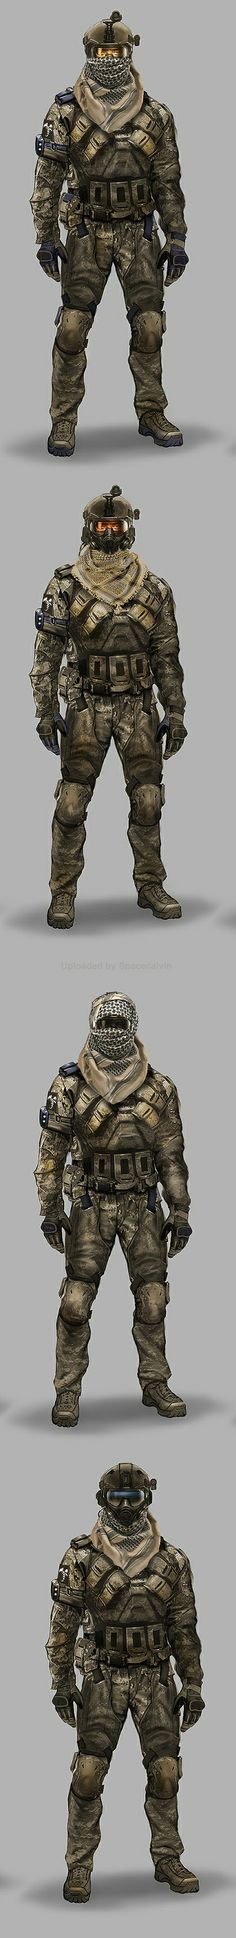 Early Black Ops 2 Concepts_ASSAULT_desert_alt by Eric Chiang